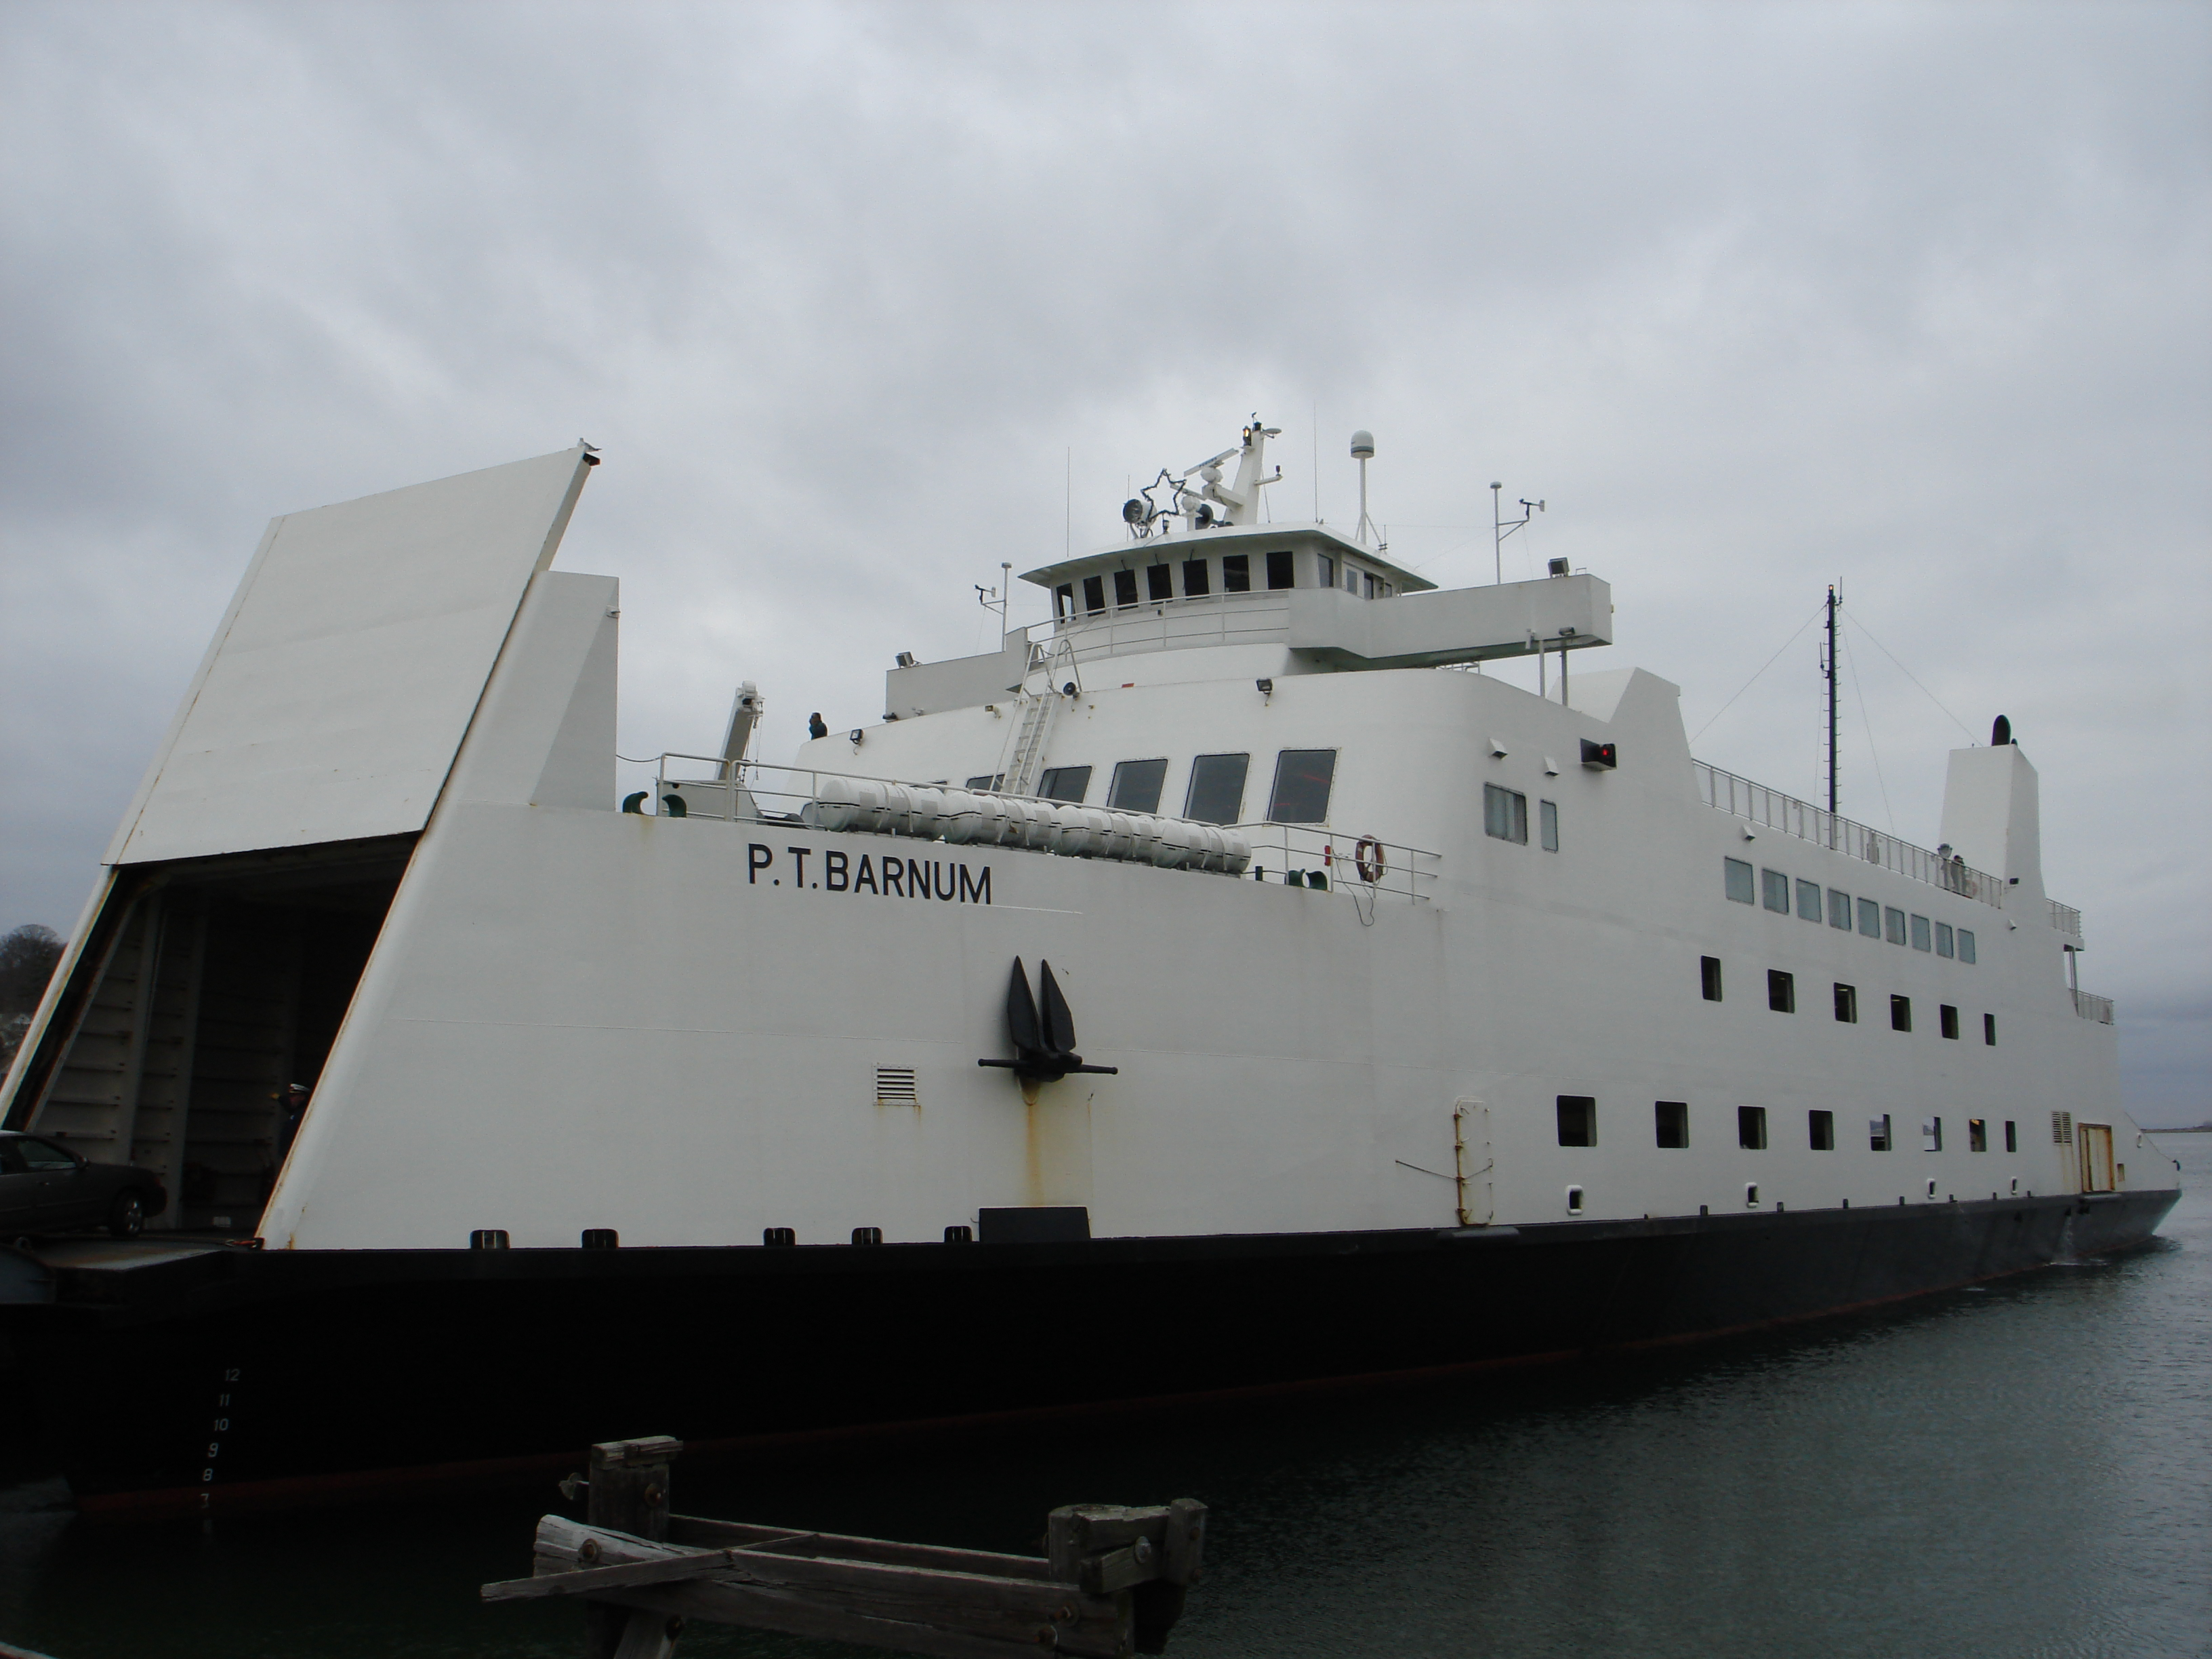 file:portjeffersonferry - wikimedia commons